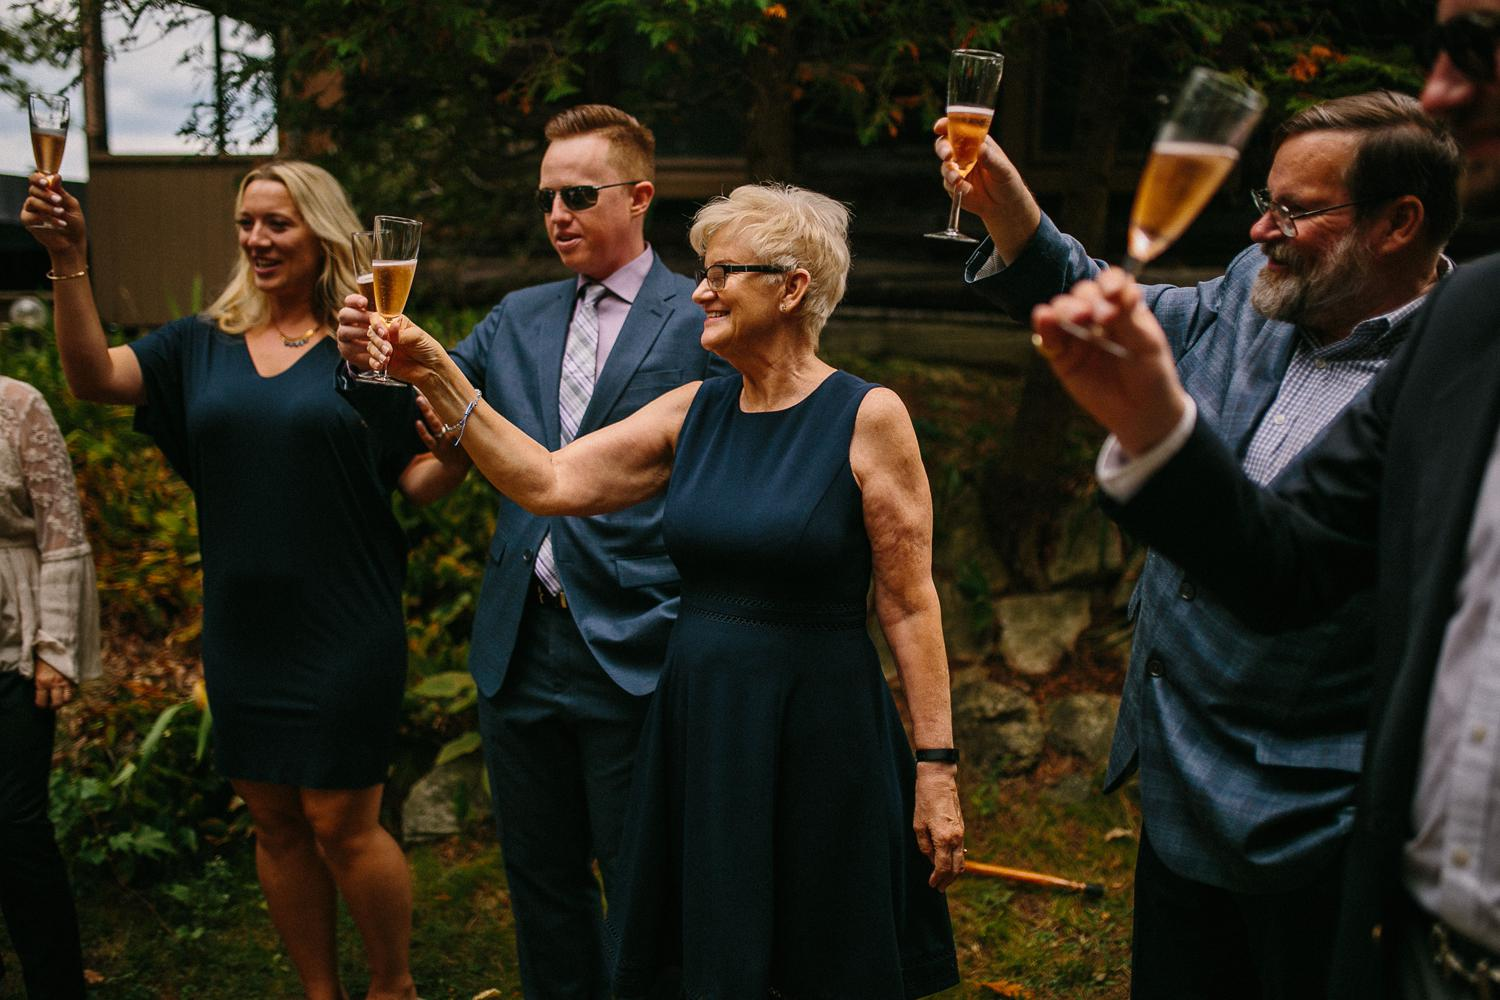 kerry ford photography - small intimate backyard rideau lake island wedding perth ontario-089.jpg